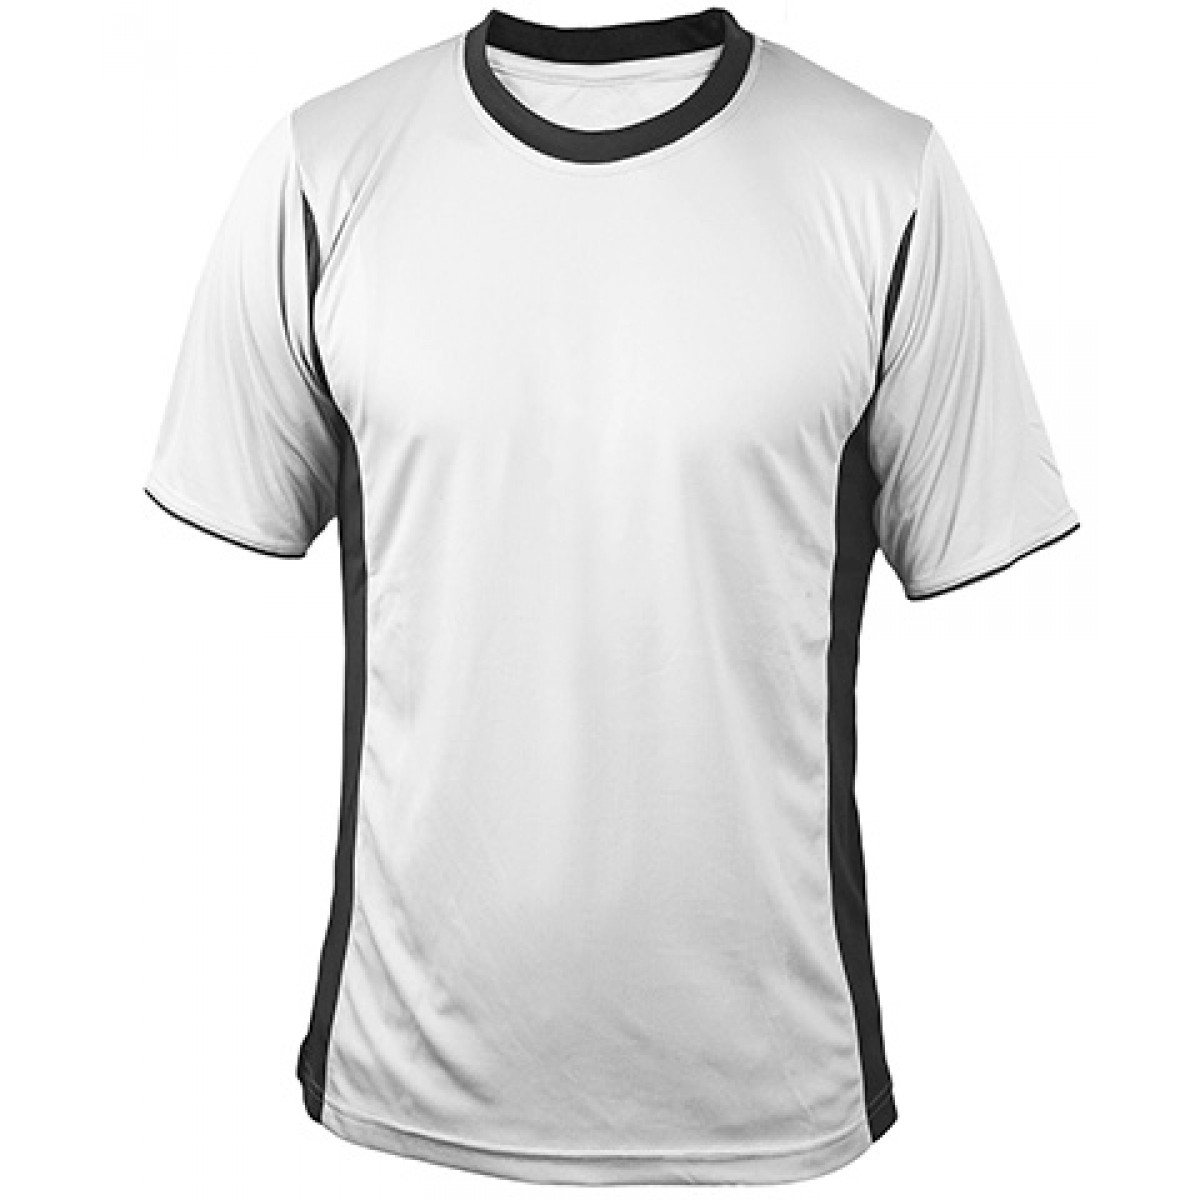 White Short Sleeves Performance With Black Side Insert-Black-3XL